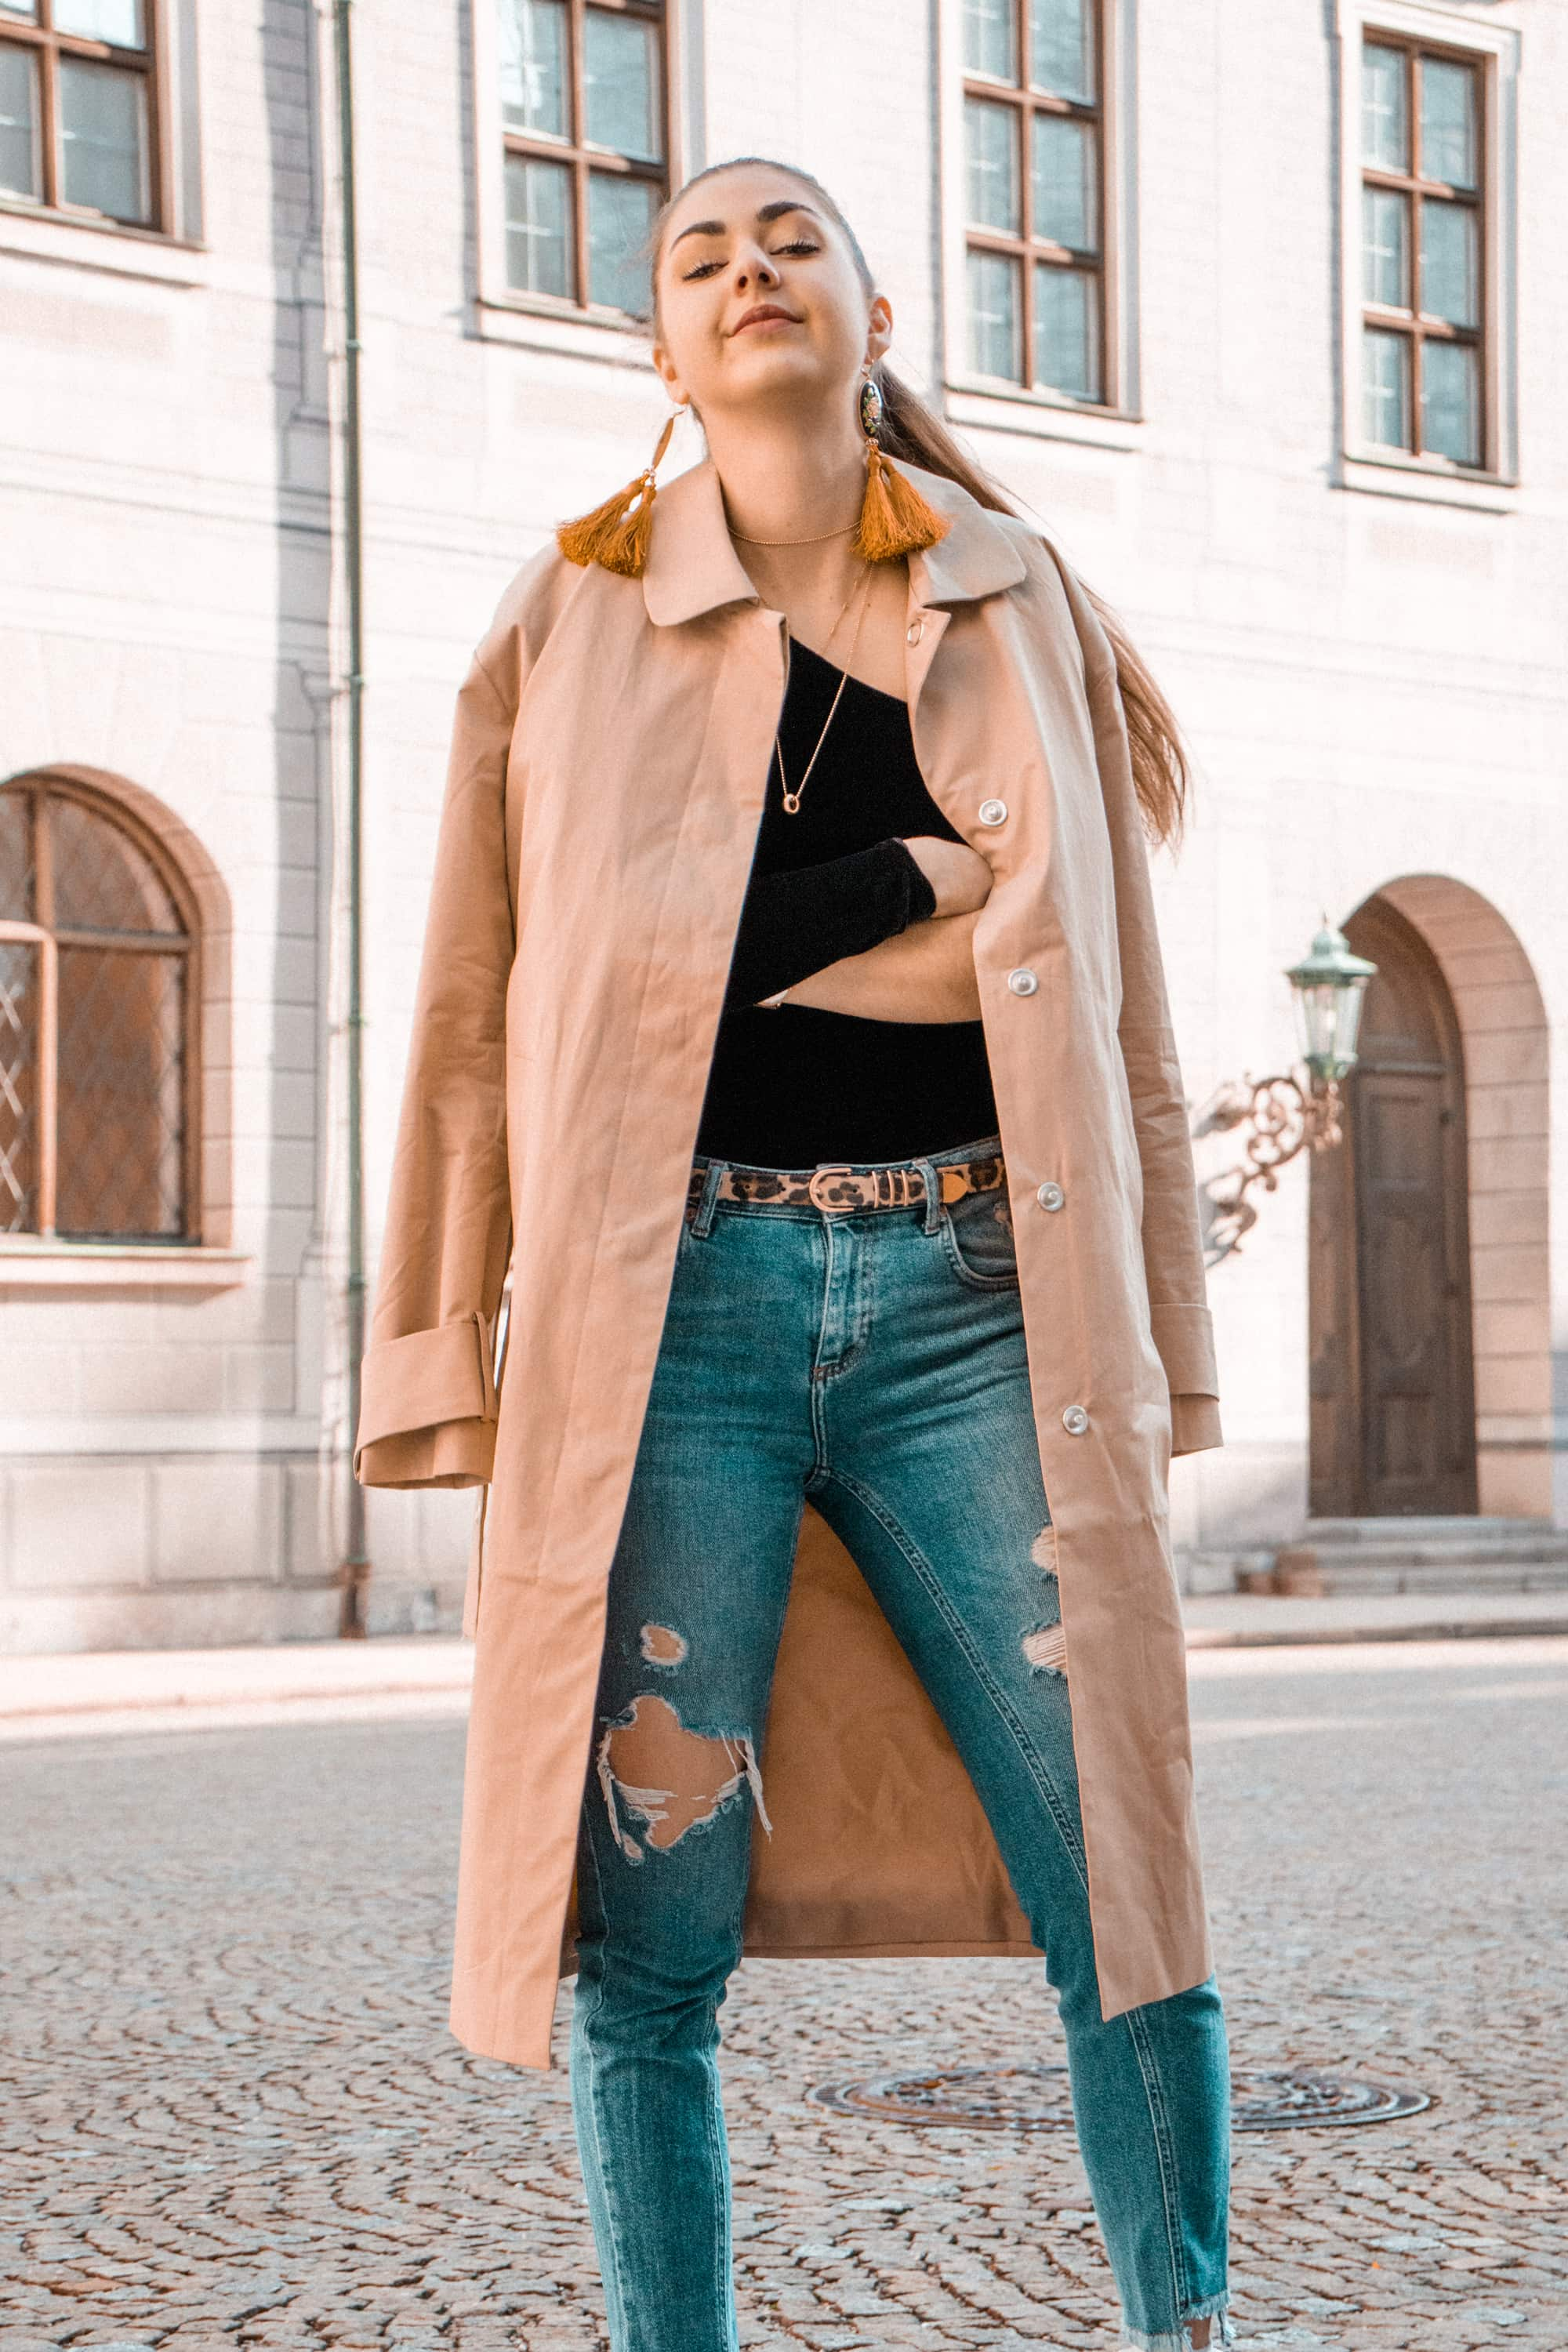 Fashion, Fashionblog, Fashion Magazine, Editorial, Style, Style Guide, Style Inspiration, Streetwear, Street Style, Swiss, Switzerland, Outift, OOTD, Outfit Inspiration, Inspo, Girly, Edgy, Stylish, Trends, Trend, Trendsetter, Carmitive, Carmen Jenny, Camel Coat, Statement Earrings, XXL Earrings, Brunette, Ponytale, Sunset, Sneakers